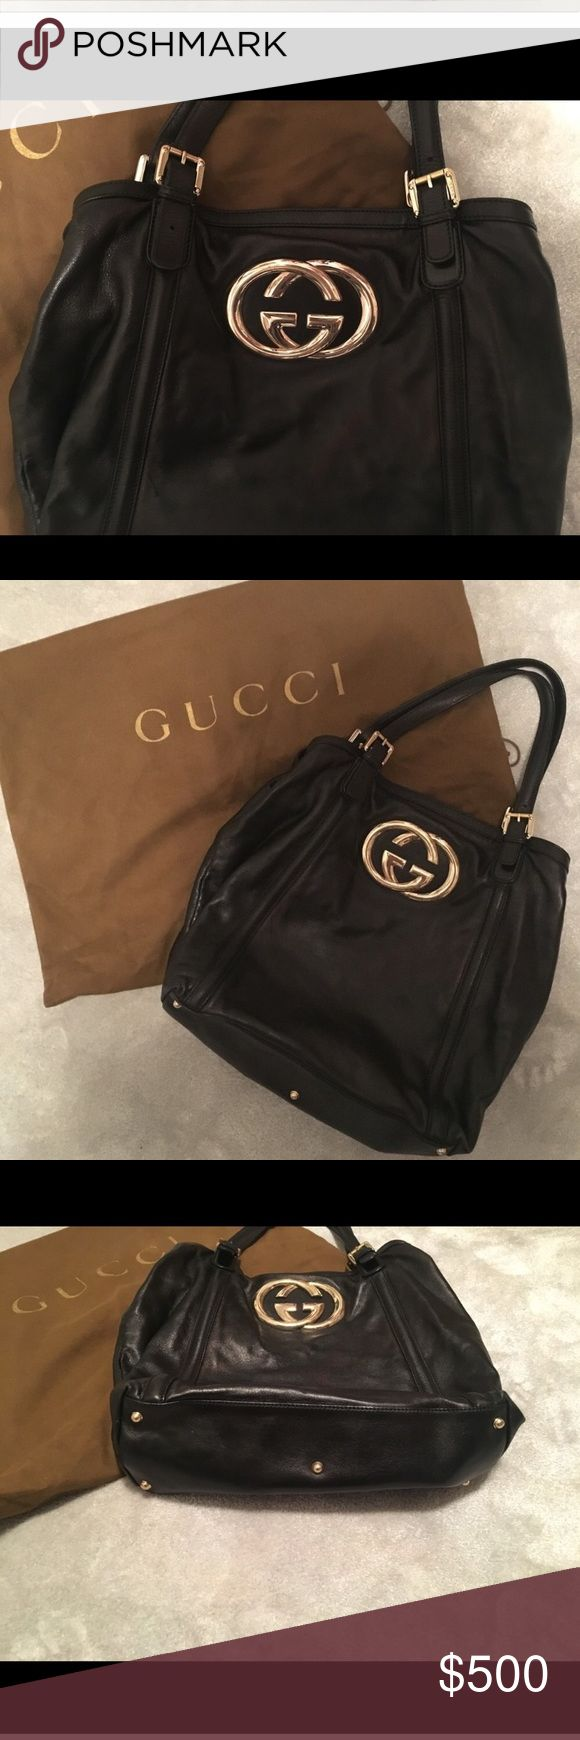 Gucci black leather tote with emblem *AUTHENTIC* This bag can definitely be considered vintage.  Bought from the Gucci store years ago and still in EXCELLENT condition.  Perfect tote for the working gal or if you just have a ton of stuff.  Has metal feet to protect bottom of the bag.  Inside of the bag is mint condition.  Comes with original dust bag. Price always negotiable! Gucci Bags Totes